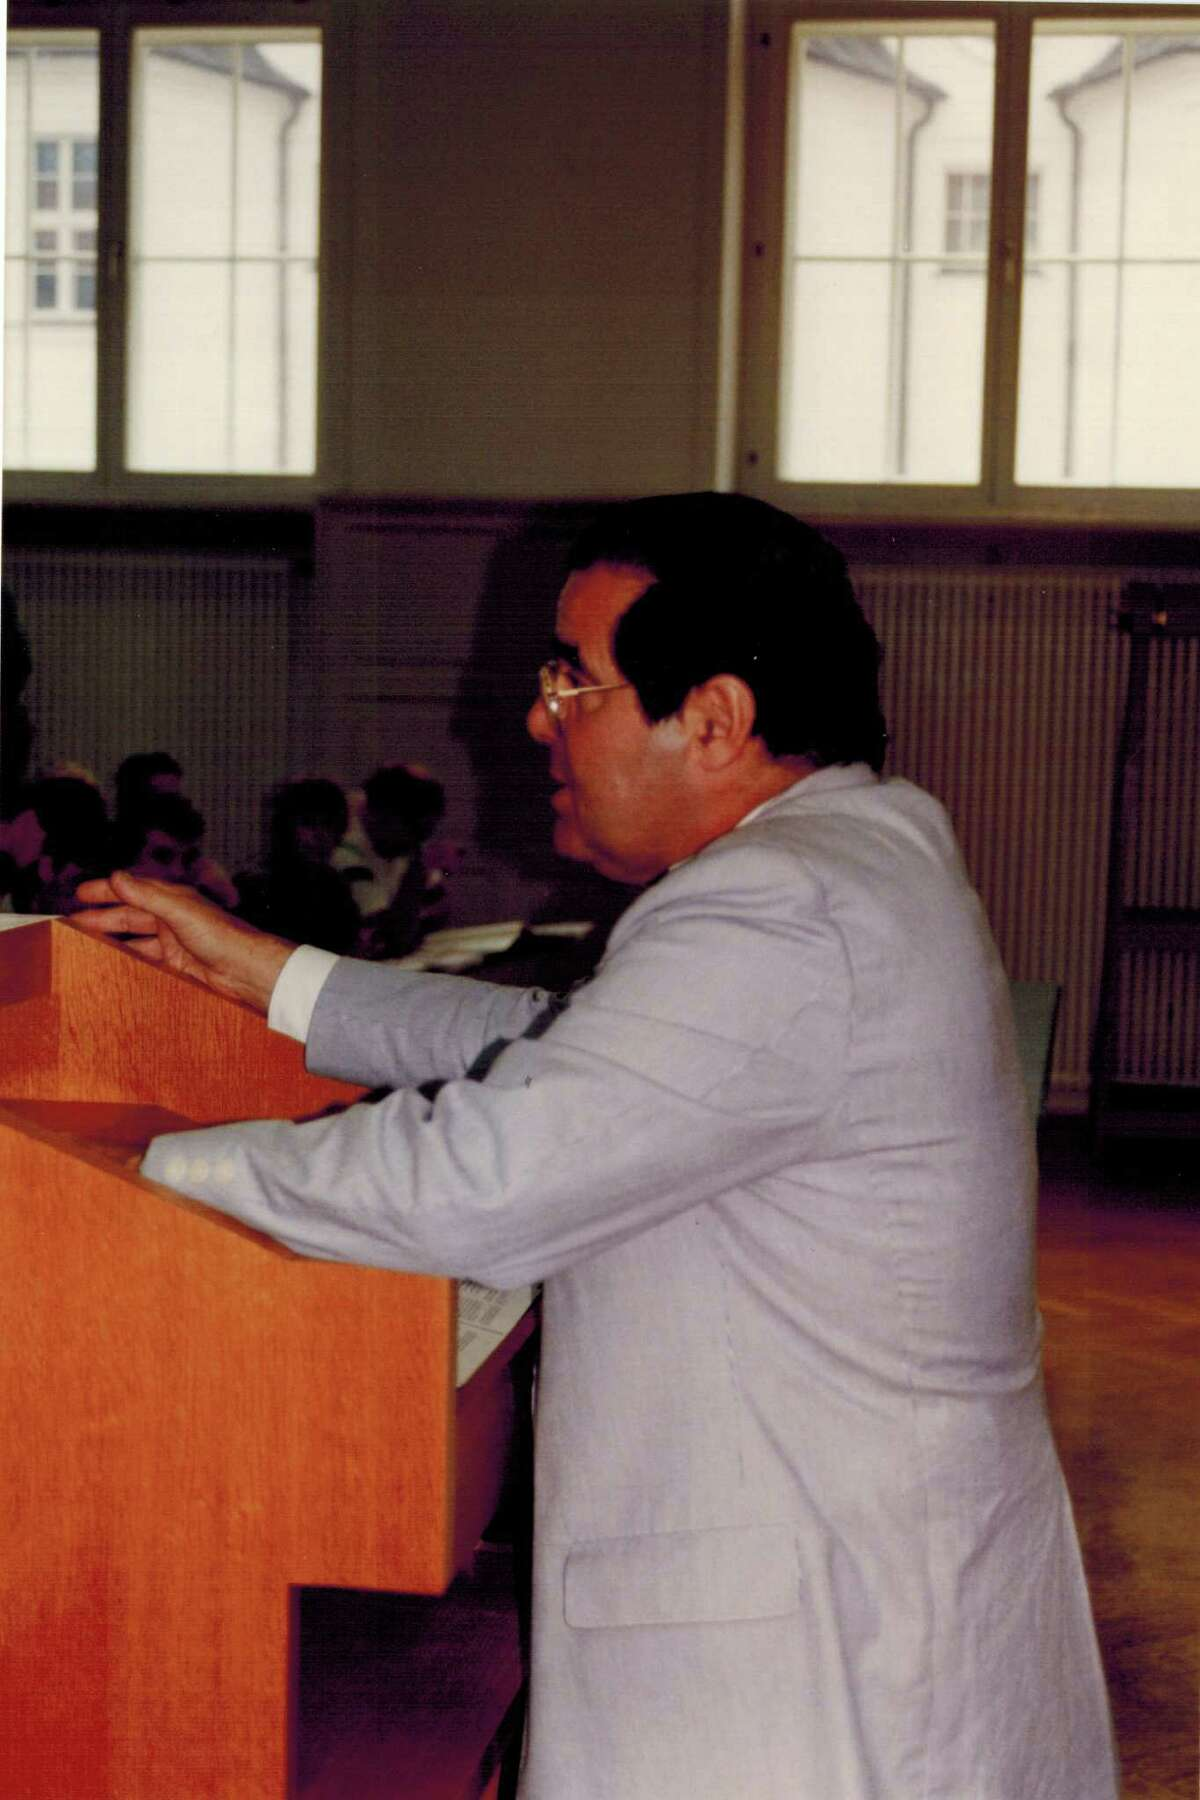 Senior U.S. Supreme Court Associate Justice Antonin Scalia teaches a class of St. Mary's University law students at the University of Innsbruck in Austria during a summer law program in 1992.